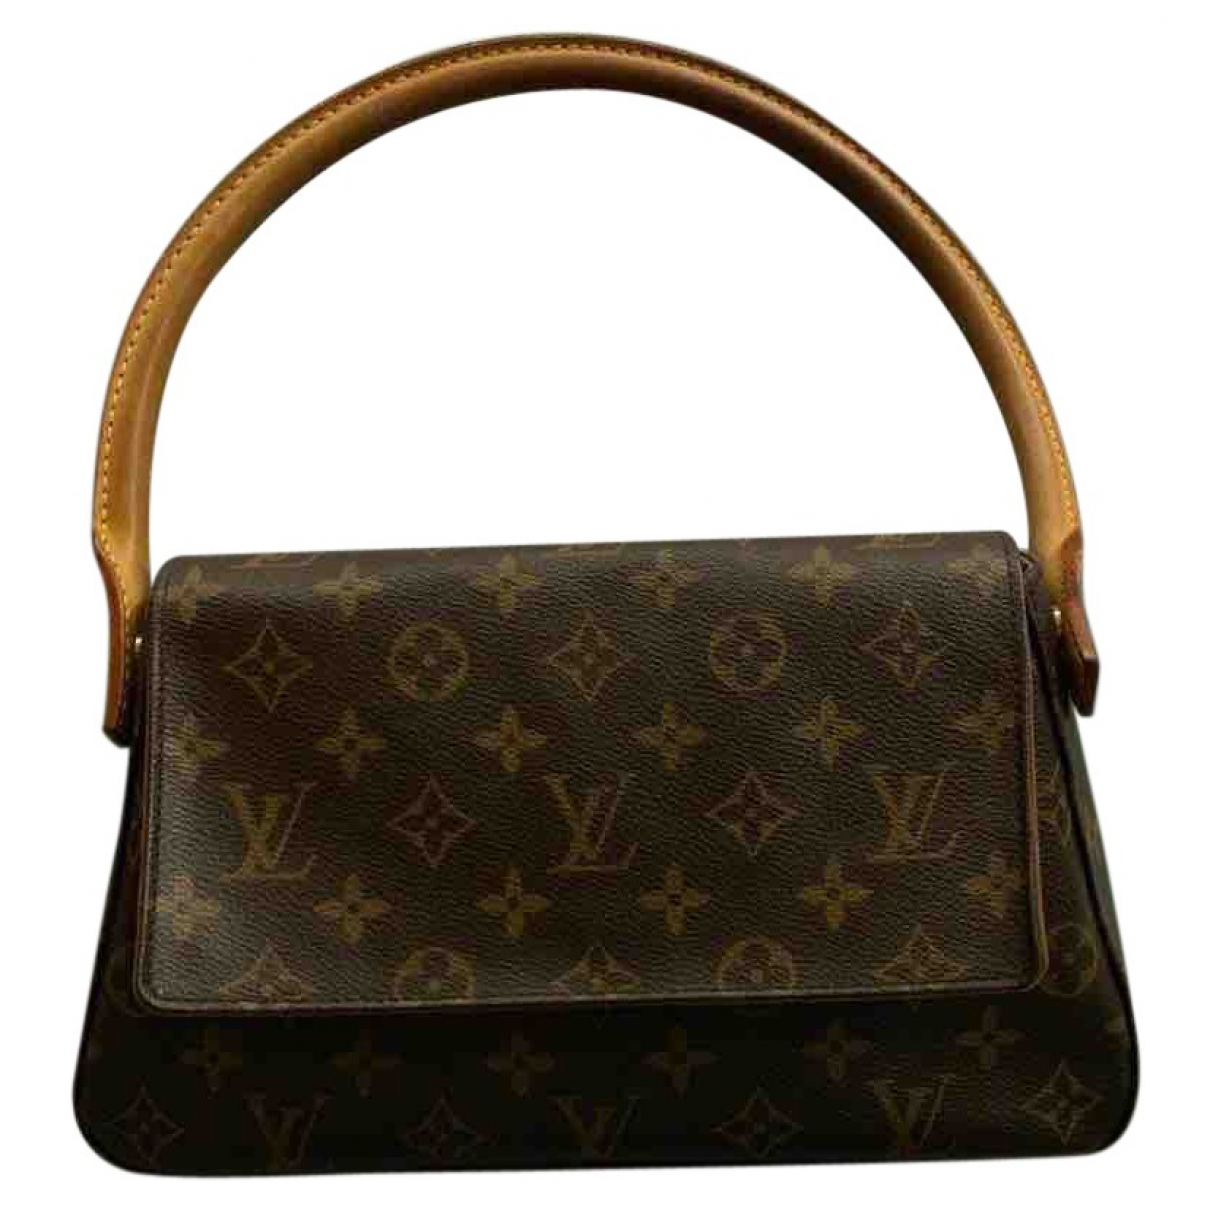 Louis Vuitton - Sac a main Looping pour femme en toile - marron